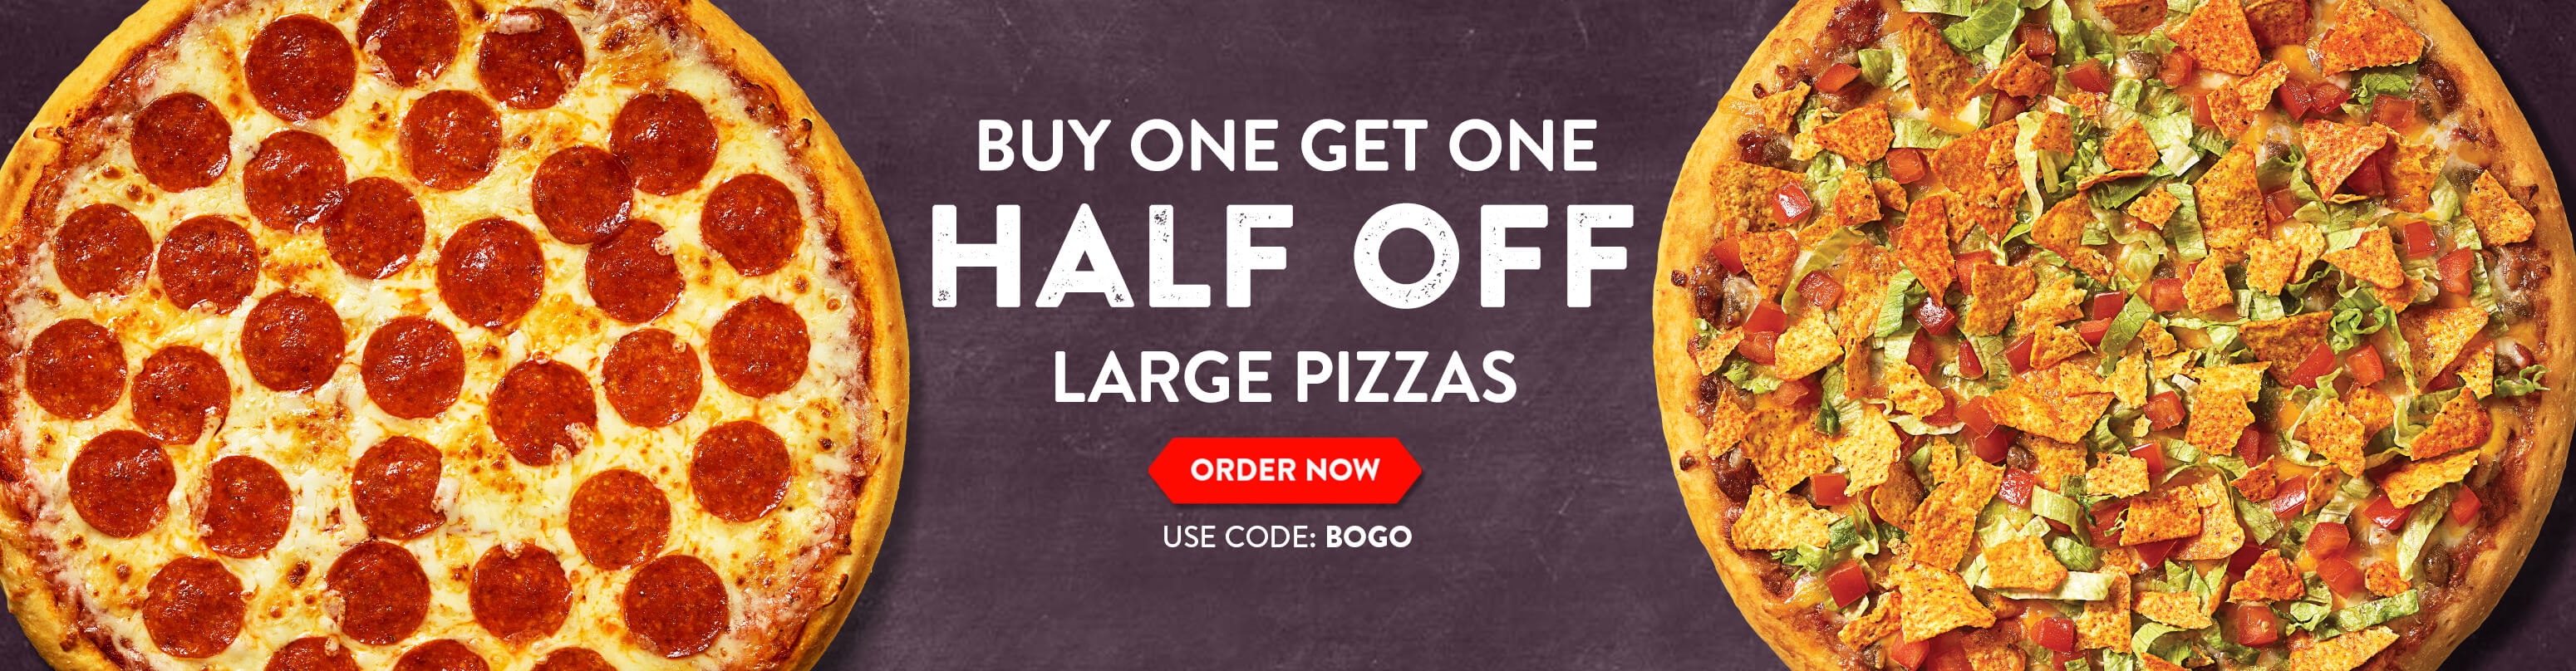 Buy a large pizza, get a second pizza 50% off. Use code BOGO